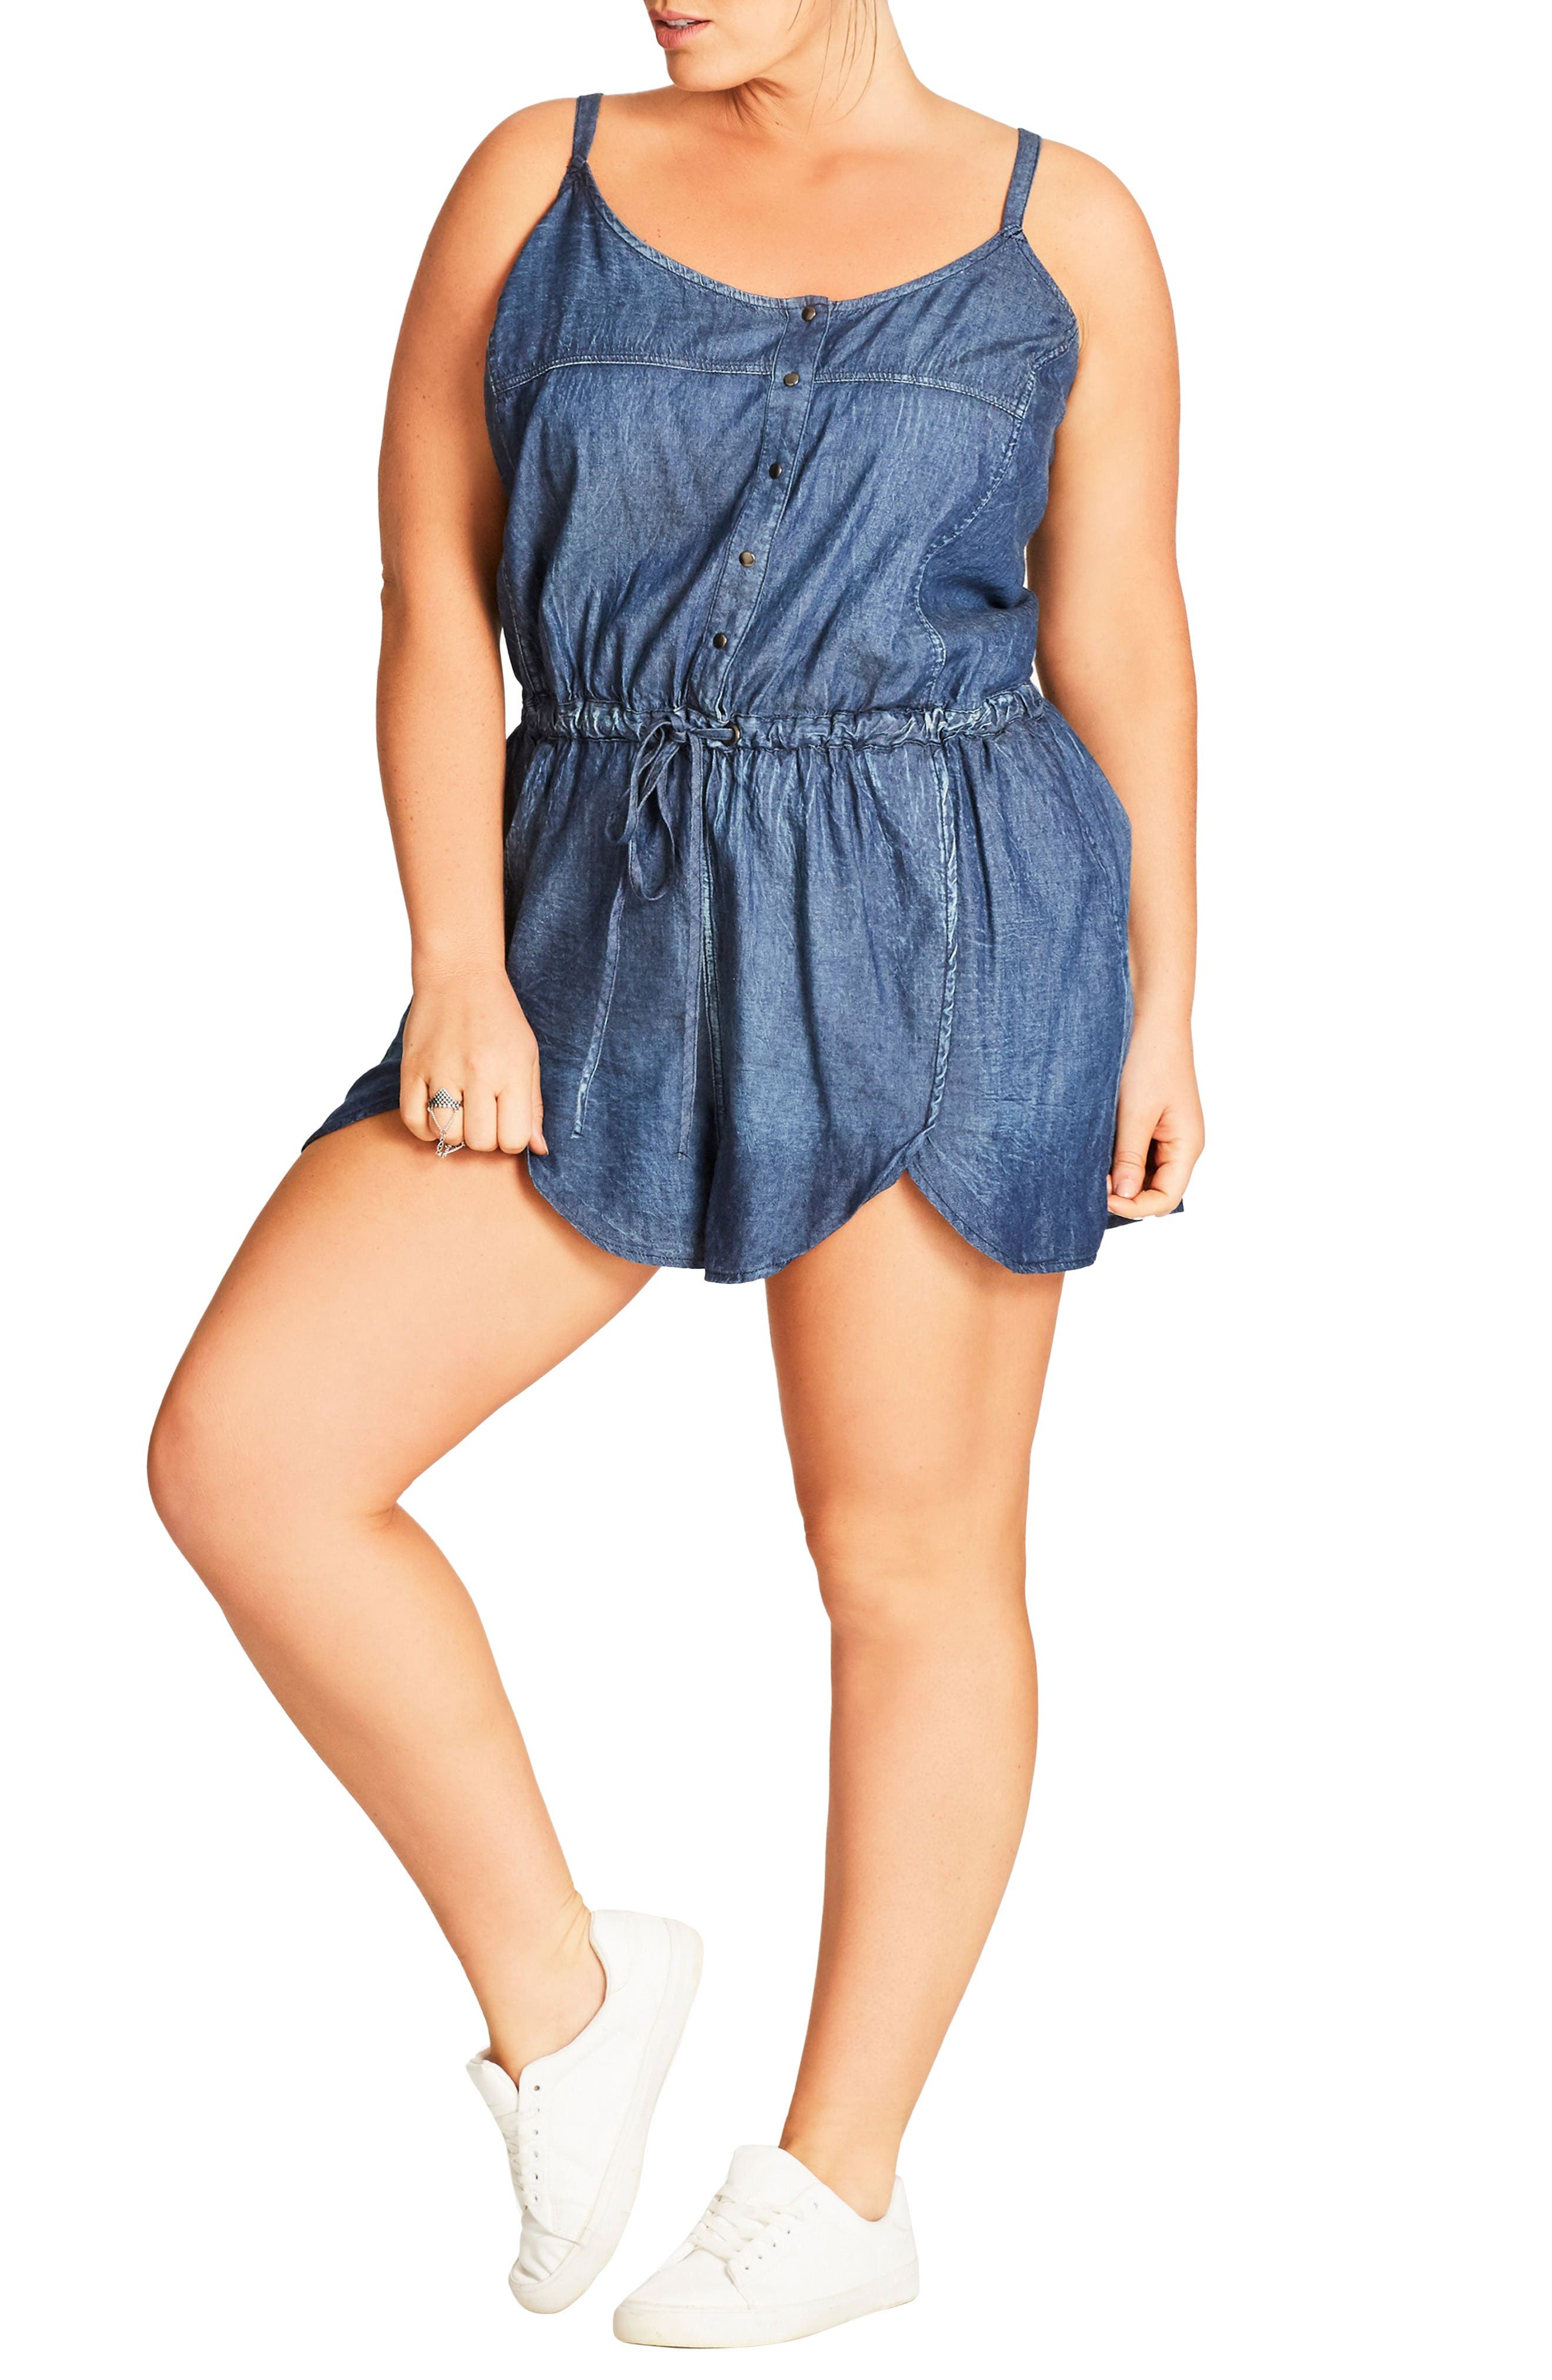 Alternate Image 1 Selected - City Chic Chambray Romper (Plus Size)